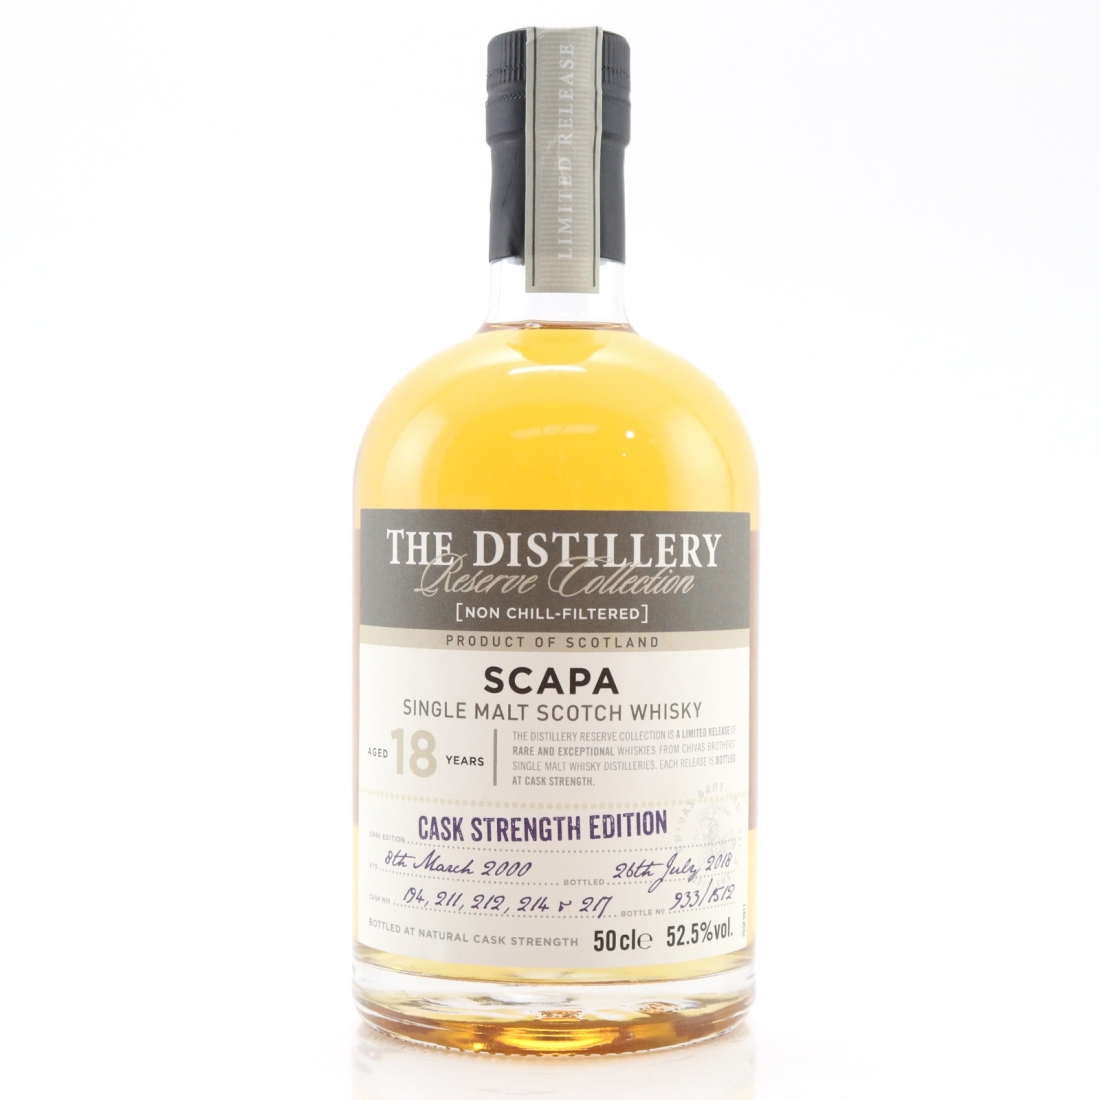 Scapa 2000 Reserve Collection 18 Year Old / Cask Strength Edition